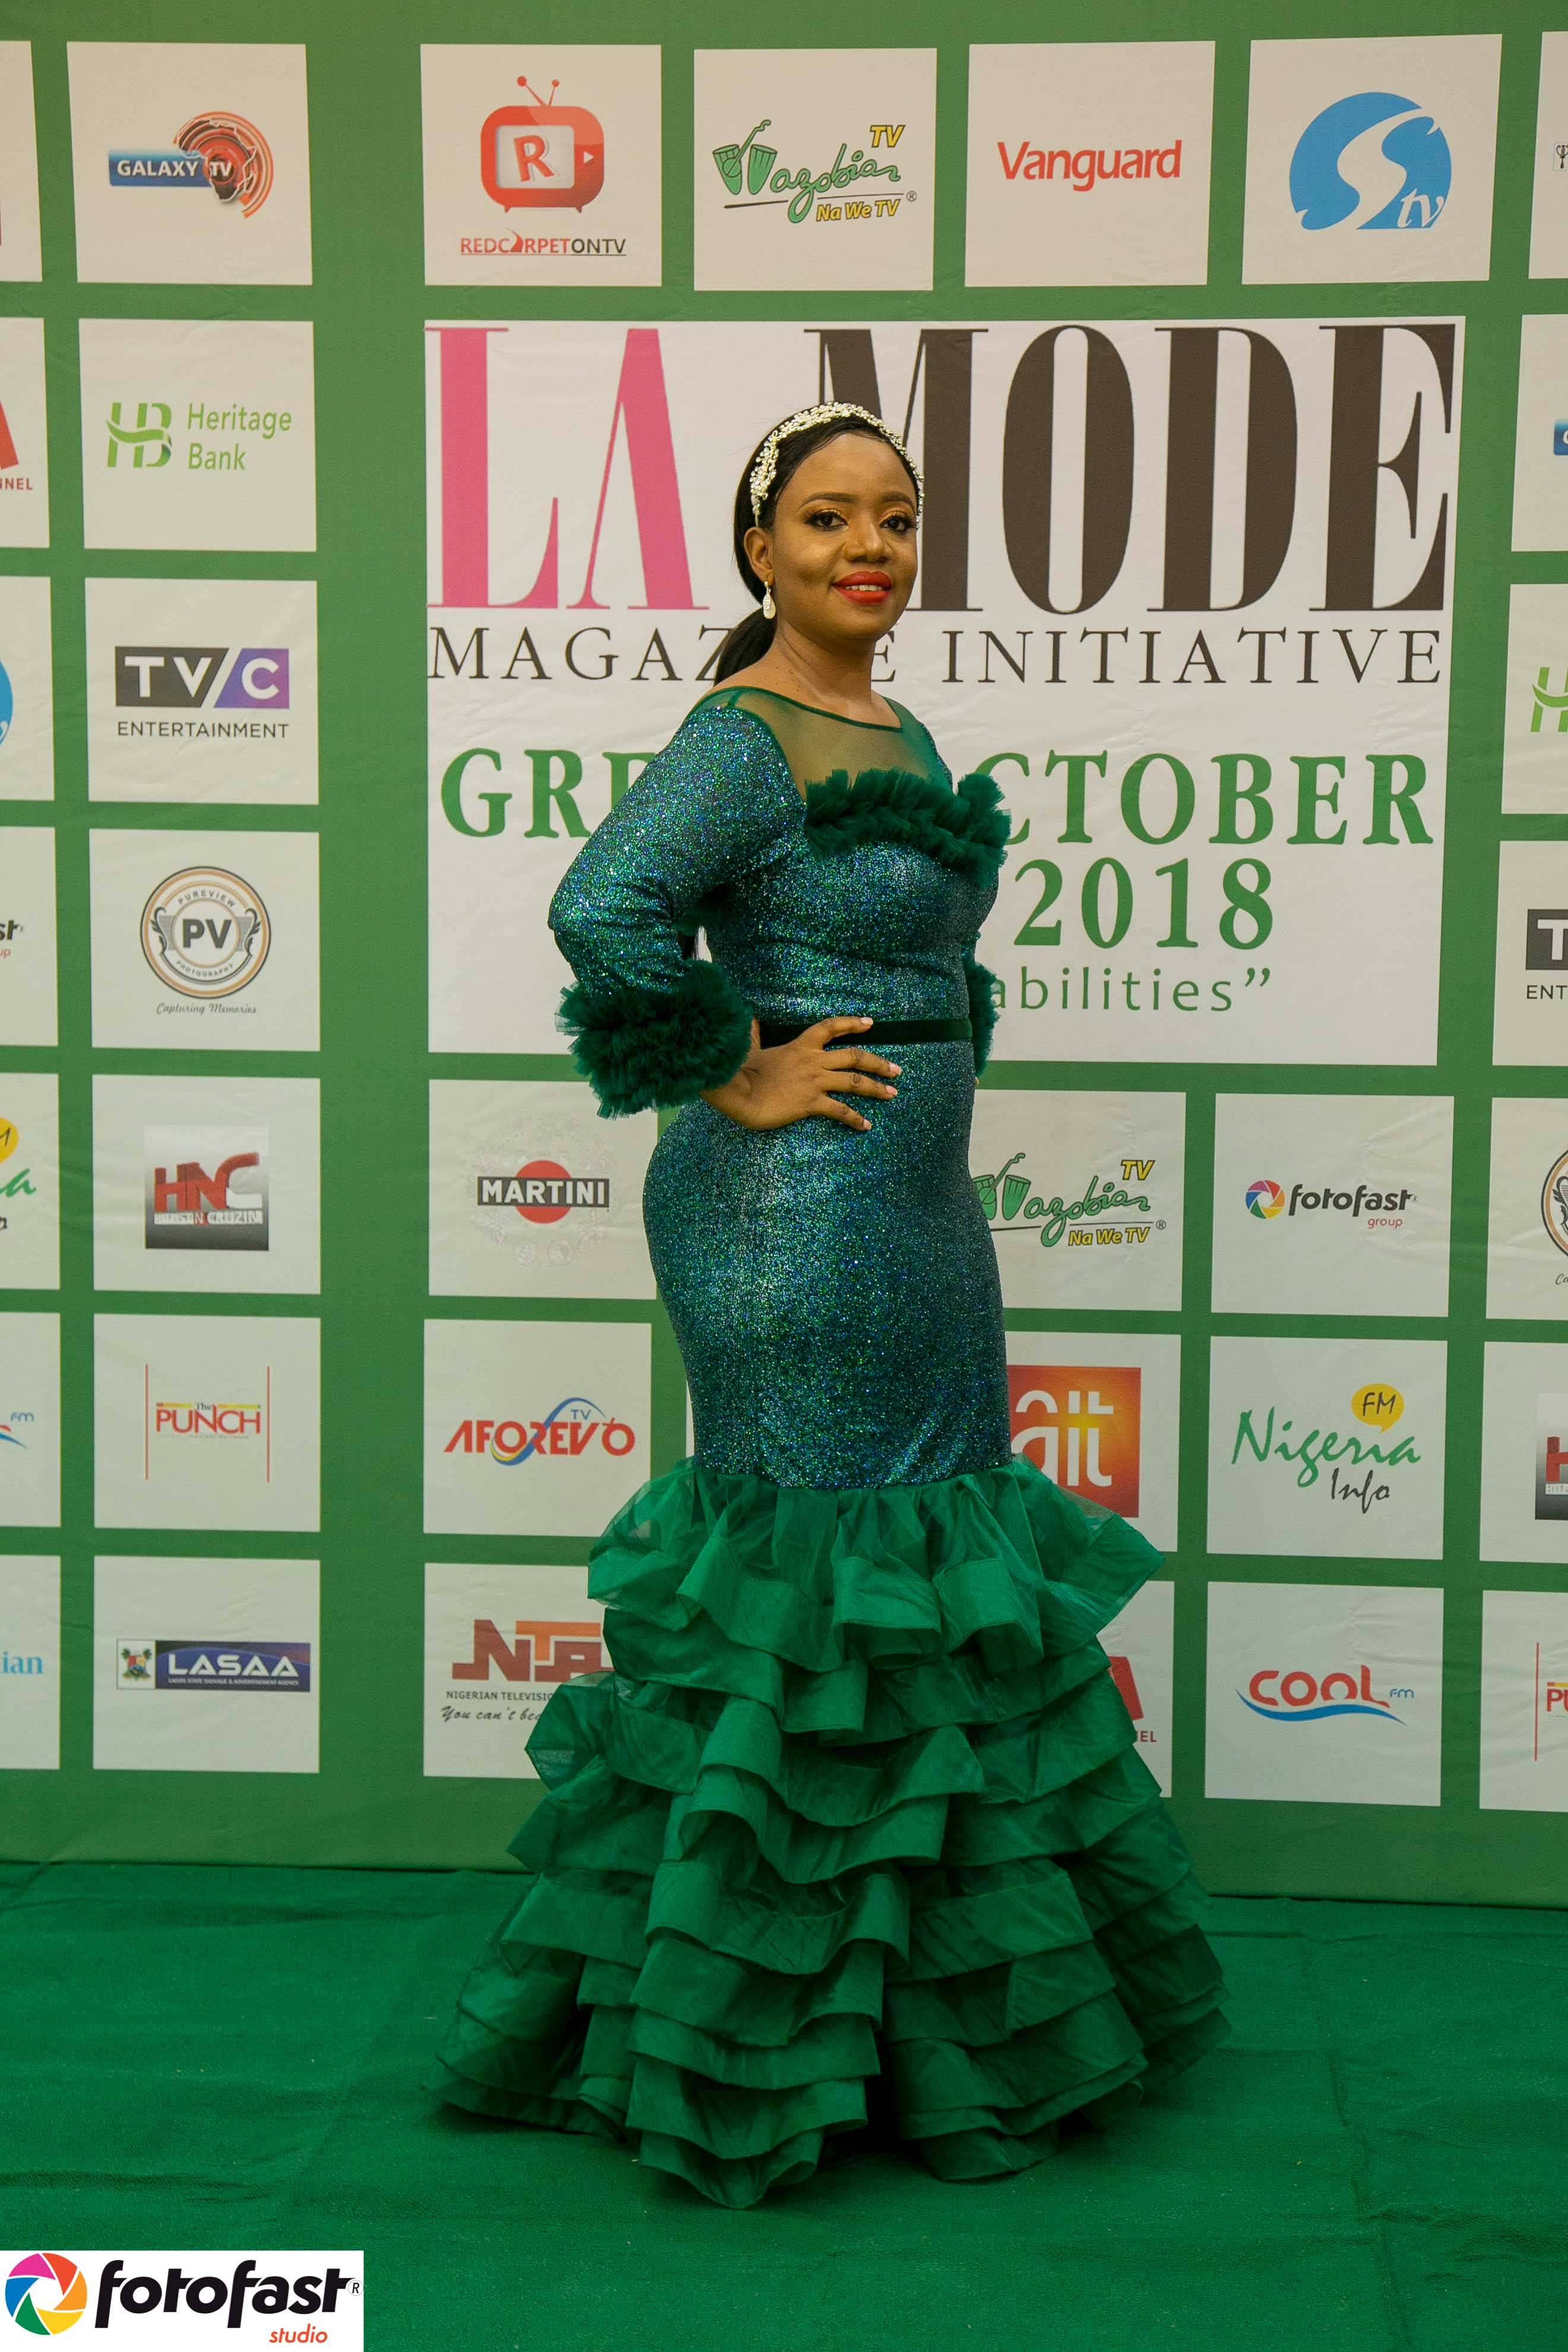 Look - CEO La Mode Magazine Mrs. Sandra Odige's Radiant Made By Trish .O. Couture's Outfit at the Green October Event 2019 Beyond Disabilities video